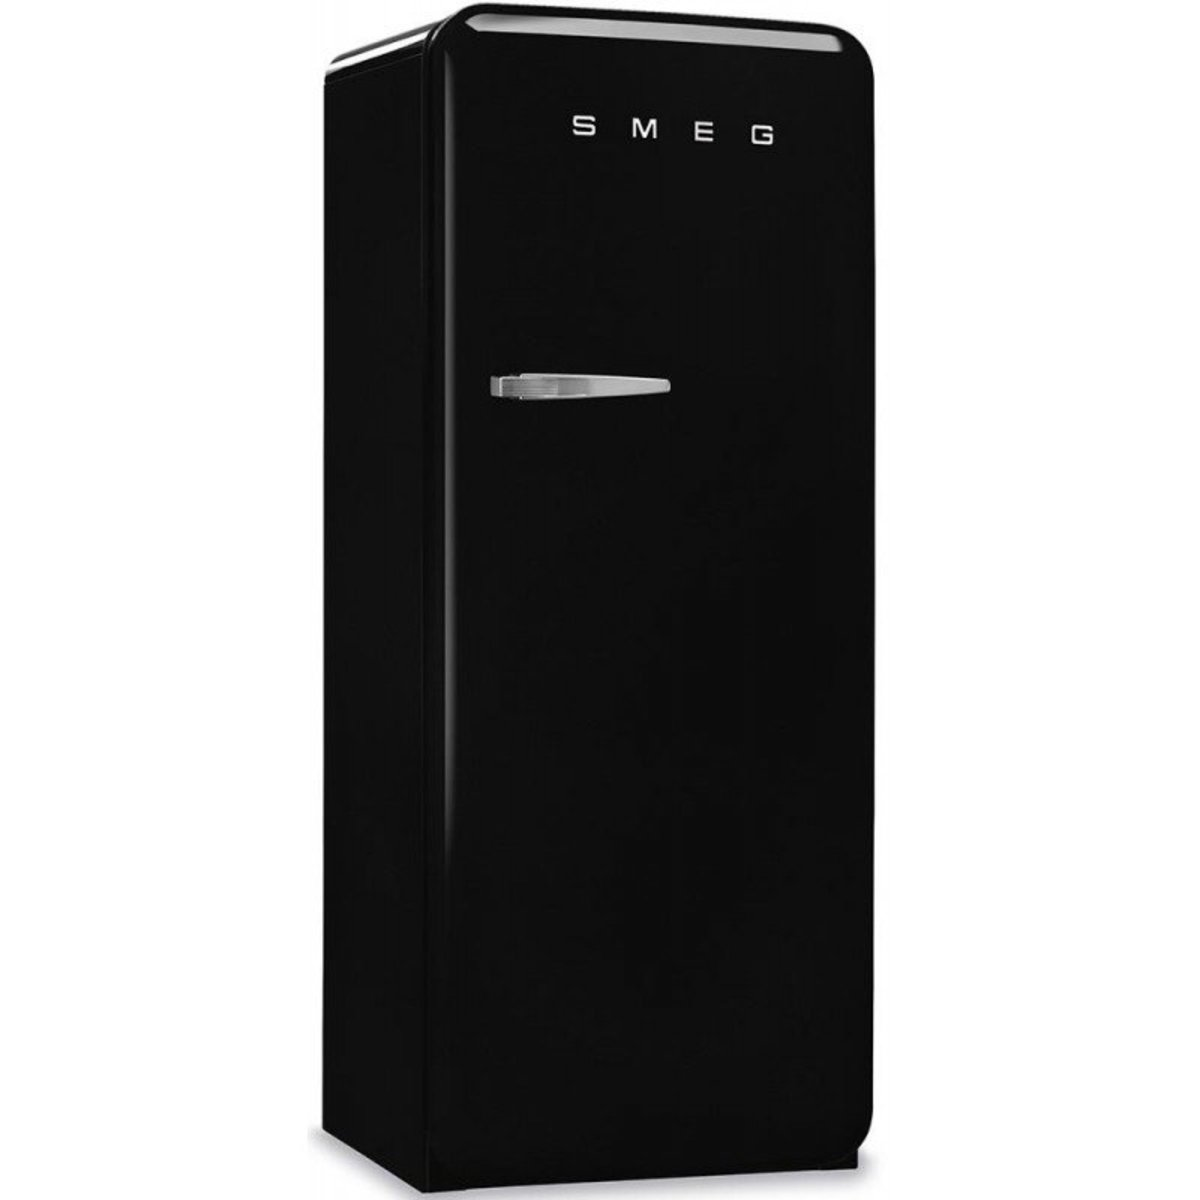 FAB28QBV3, 50's style Refrigerator with ice compartment, Black velvet [預訂]